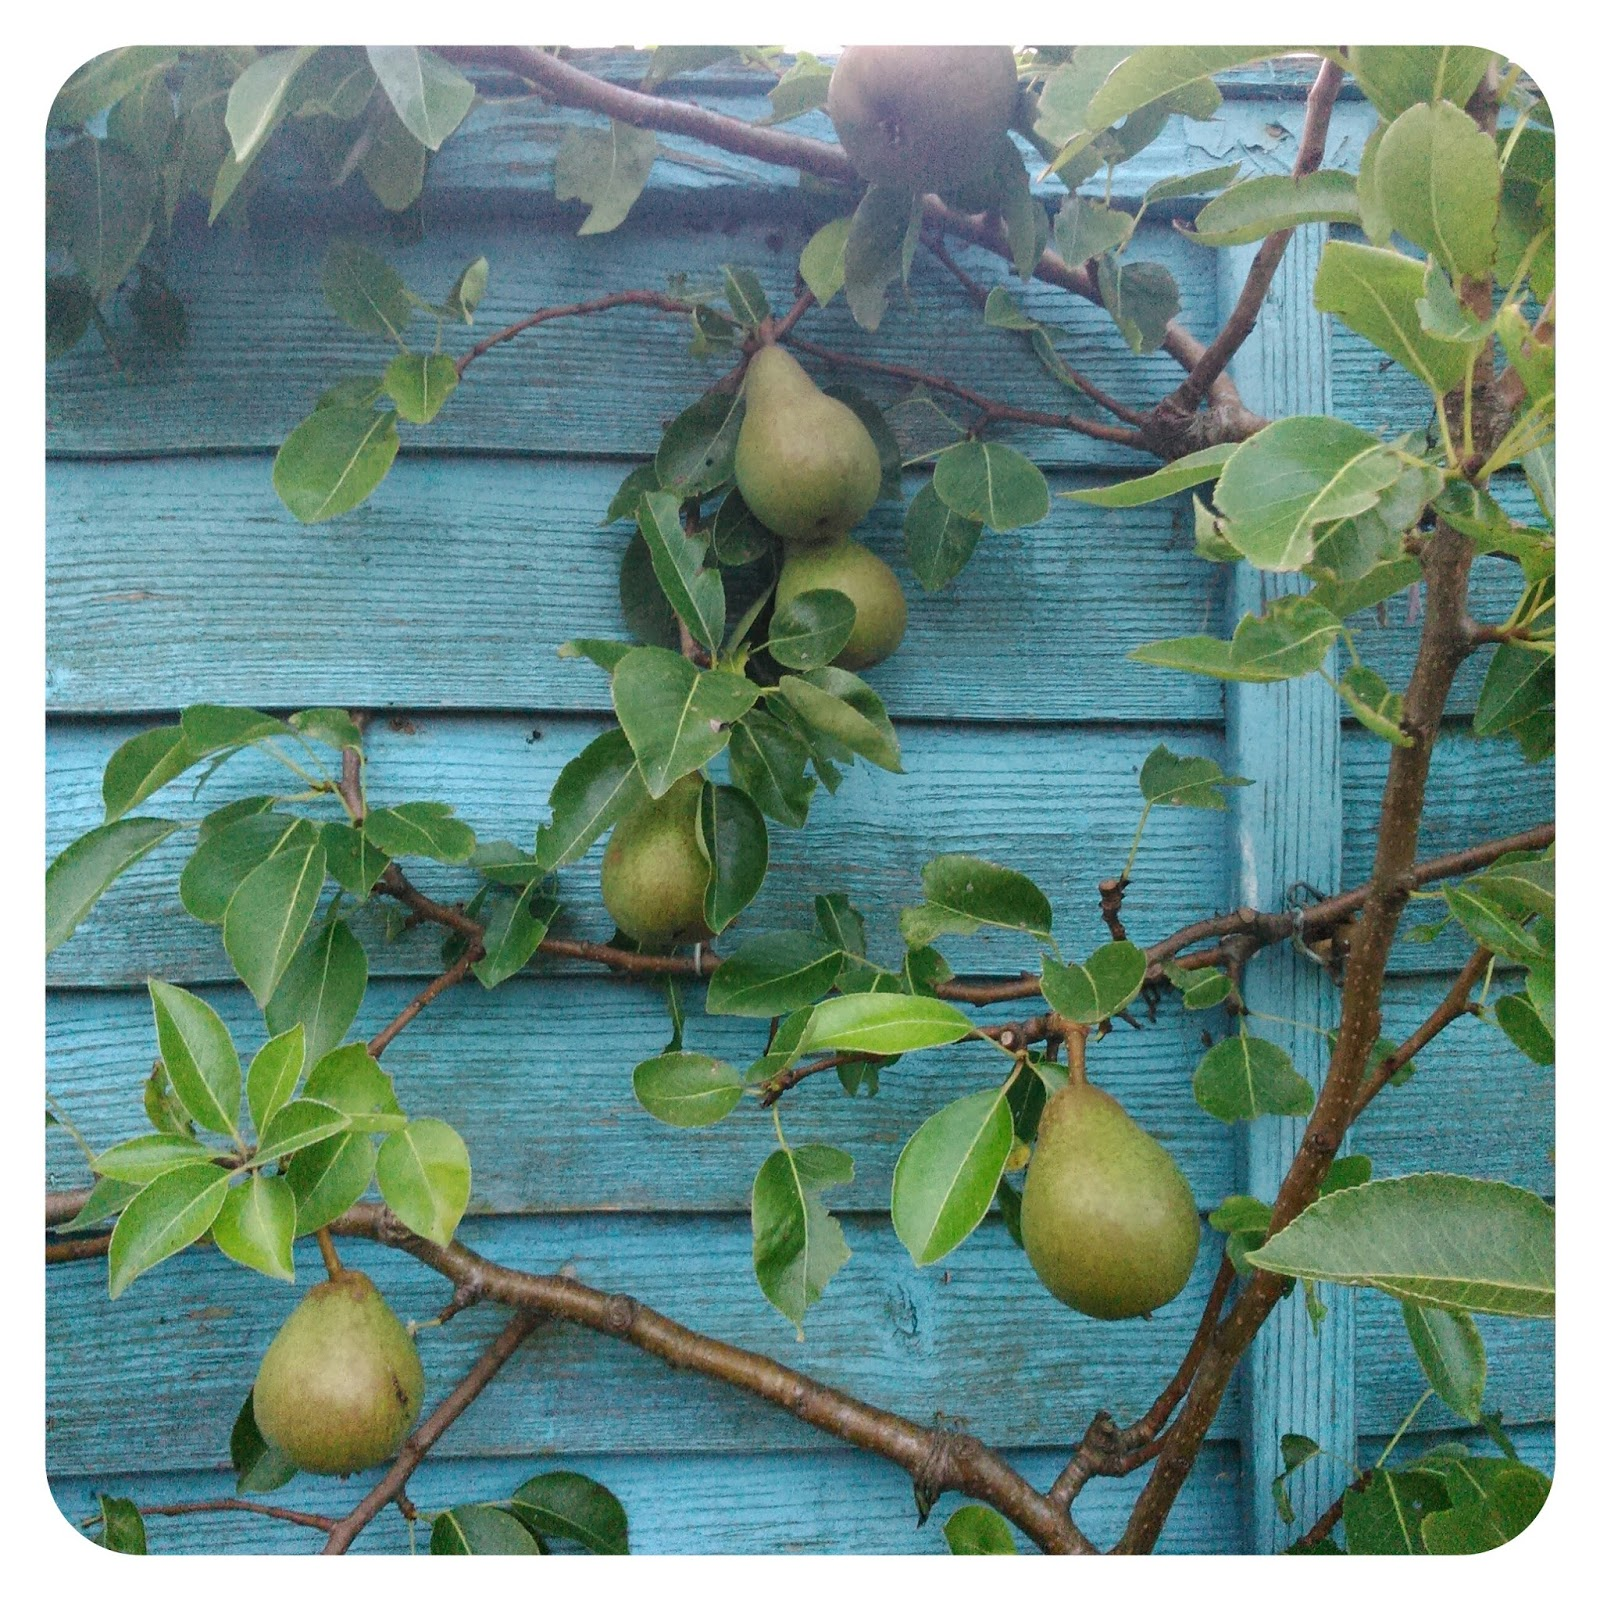 Harriet's lovely pear tree